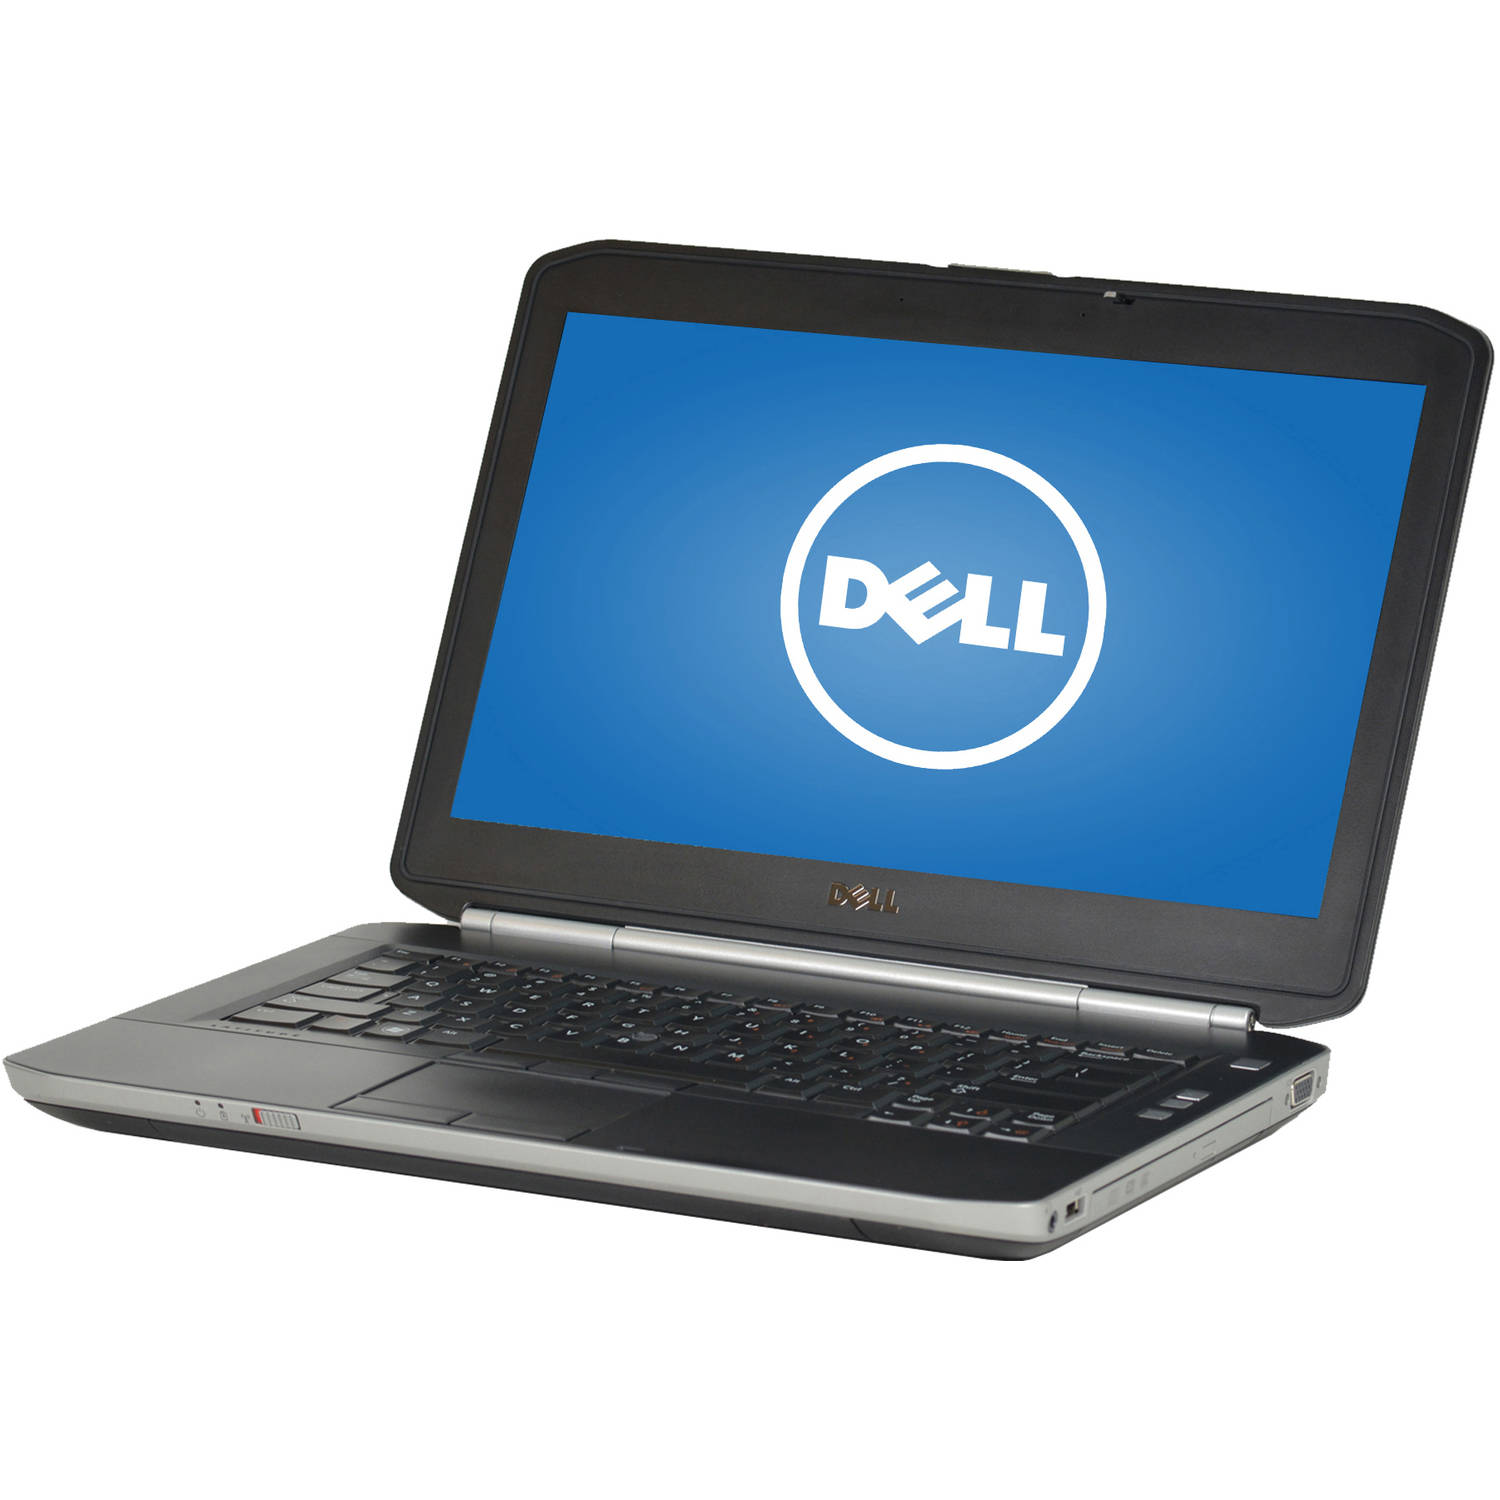 Refurbished Dell 14 Latitude E5420 LT Laptop PC with Intel Core i5 Processor, 4GB Memory, 750GB Hard Drive and Windows 10 Pro